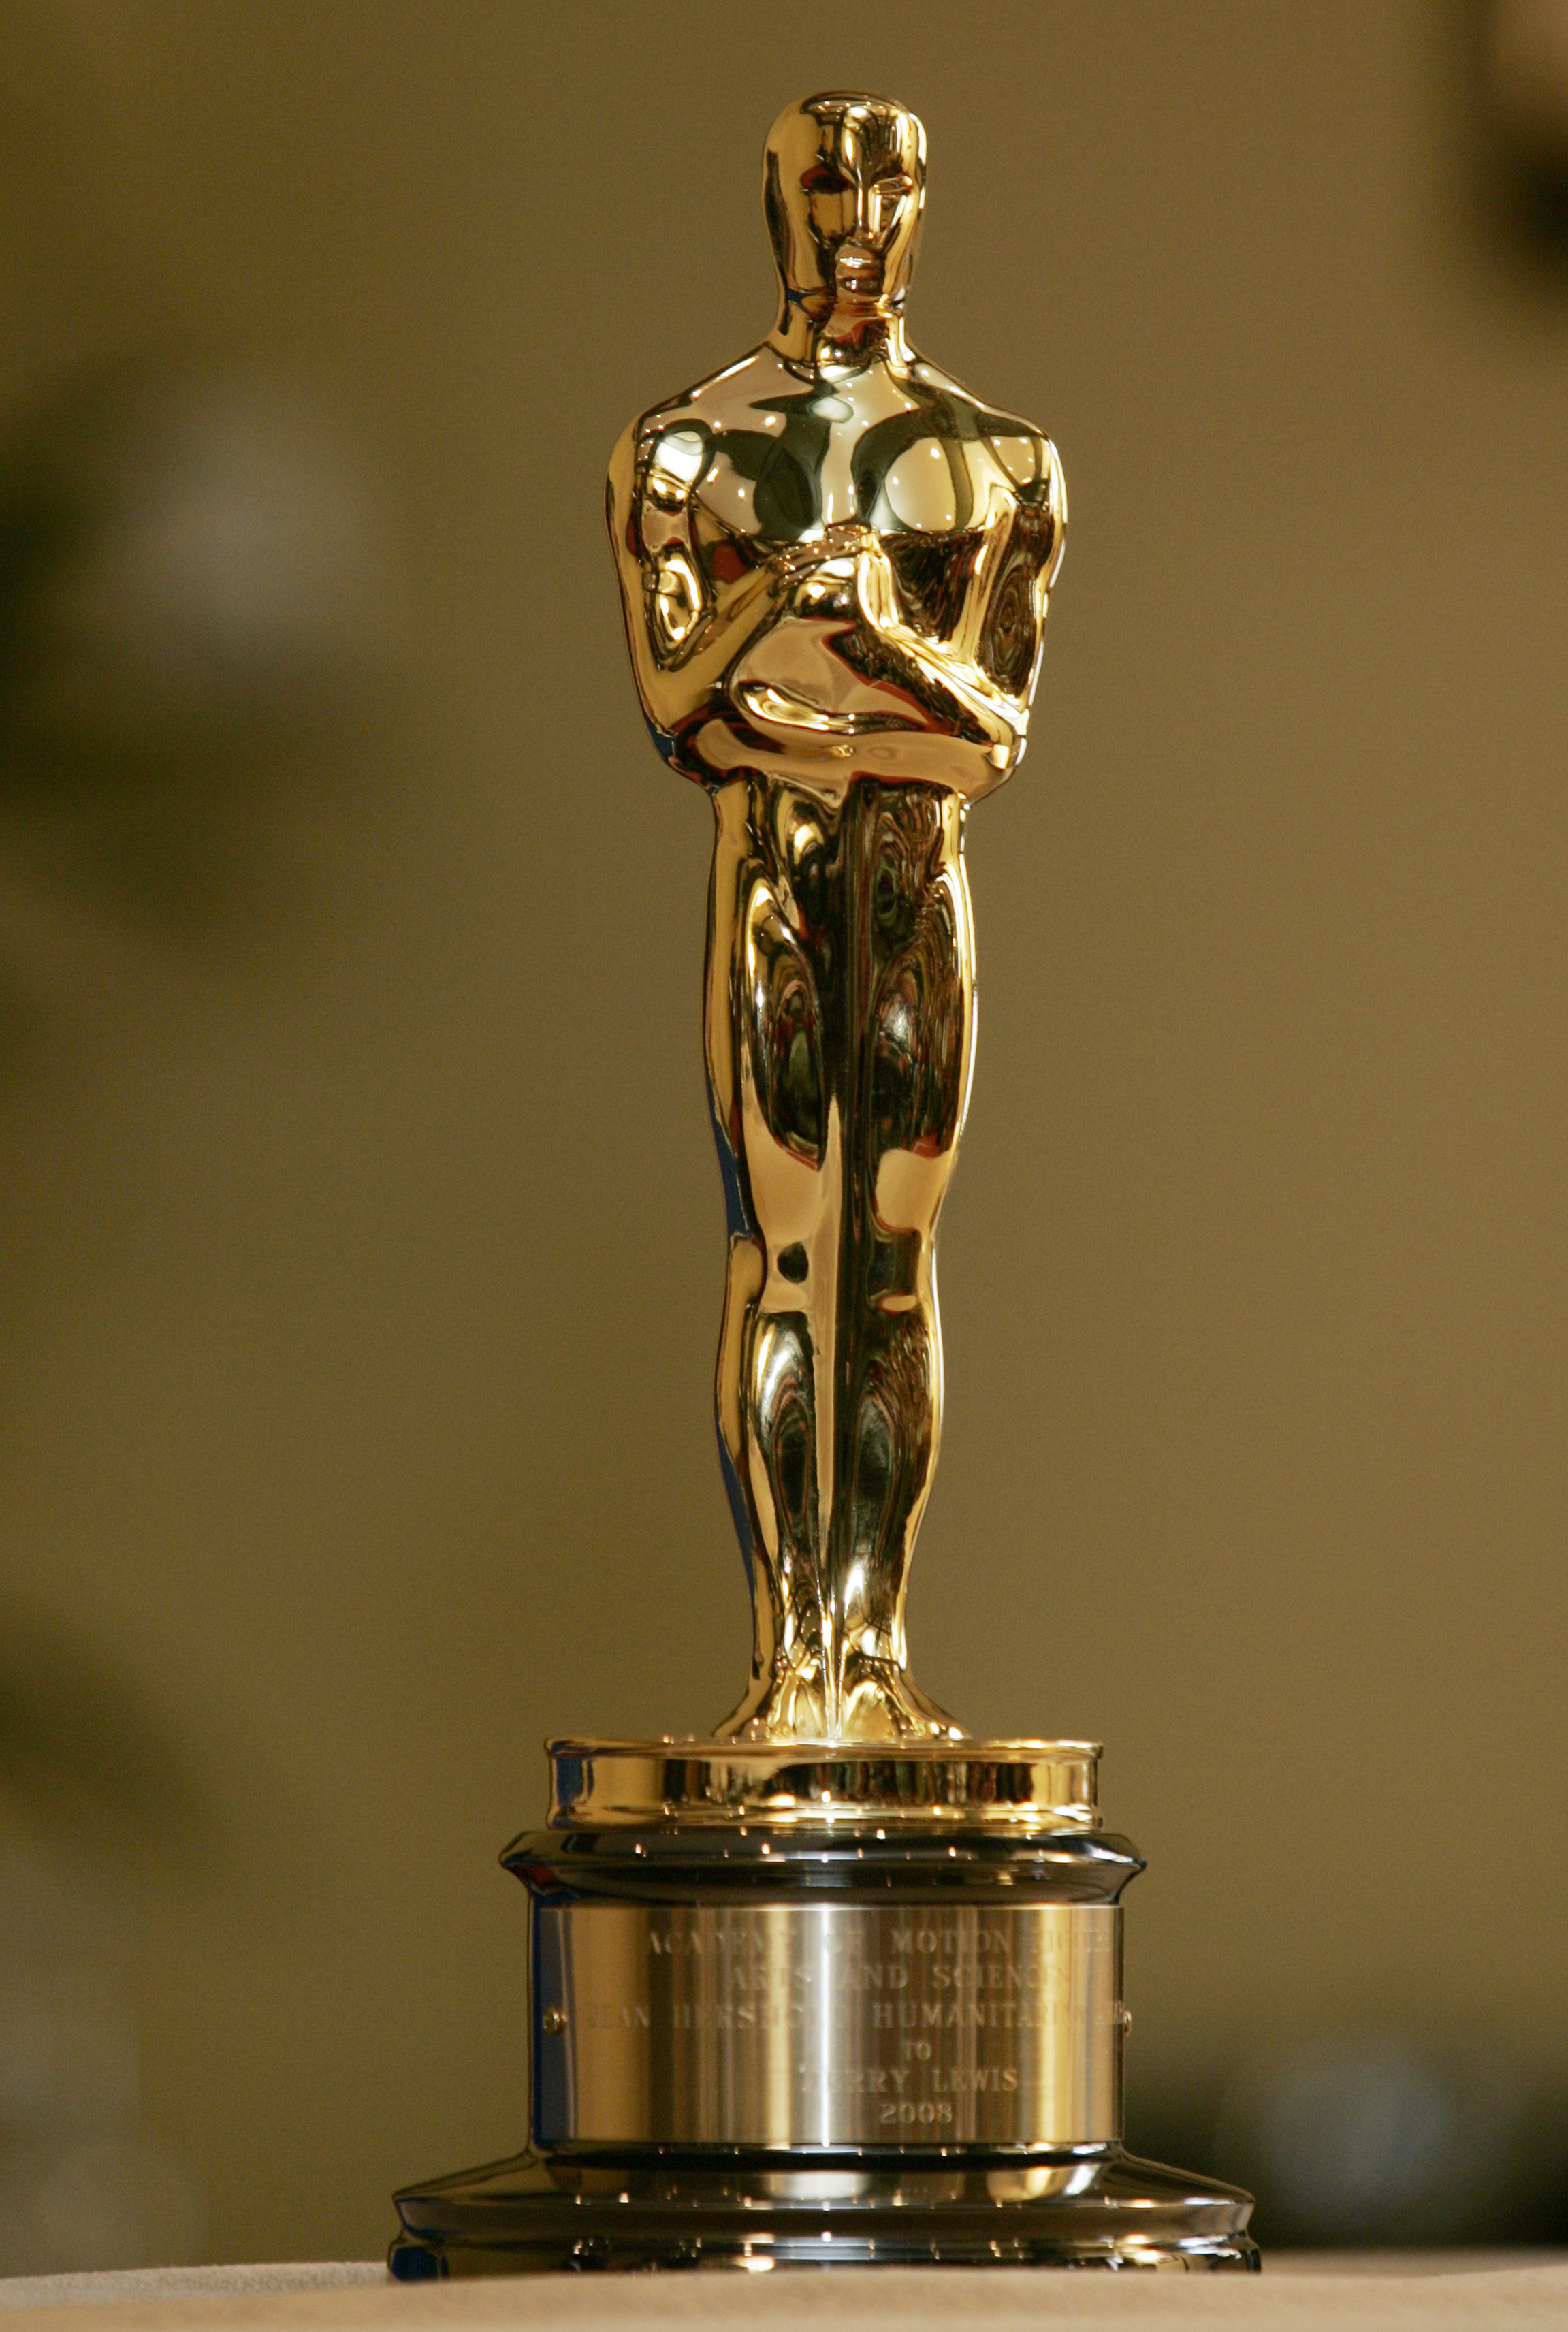 academy awards oscar winners oscar best actress the help Follow Us Academyawards